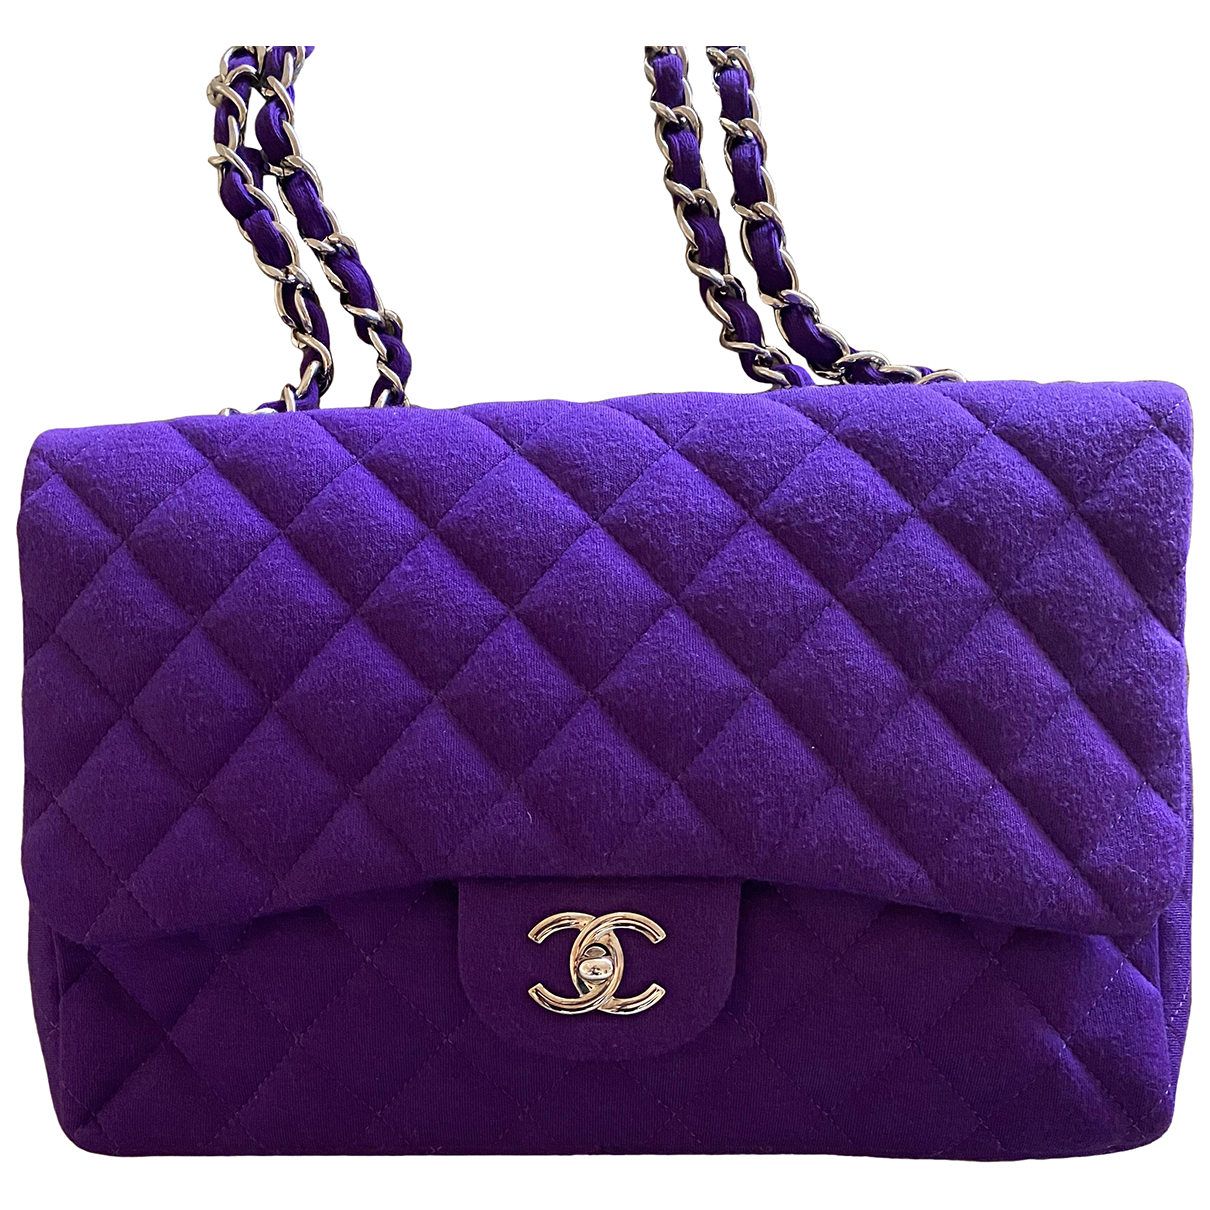 Chanel Timeless/Classique Handtasche in  Lila Wolle